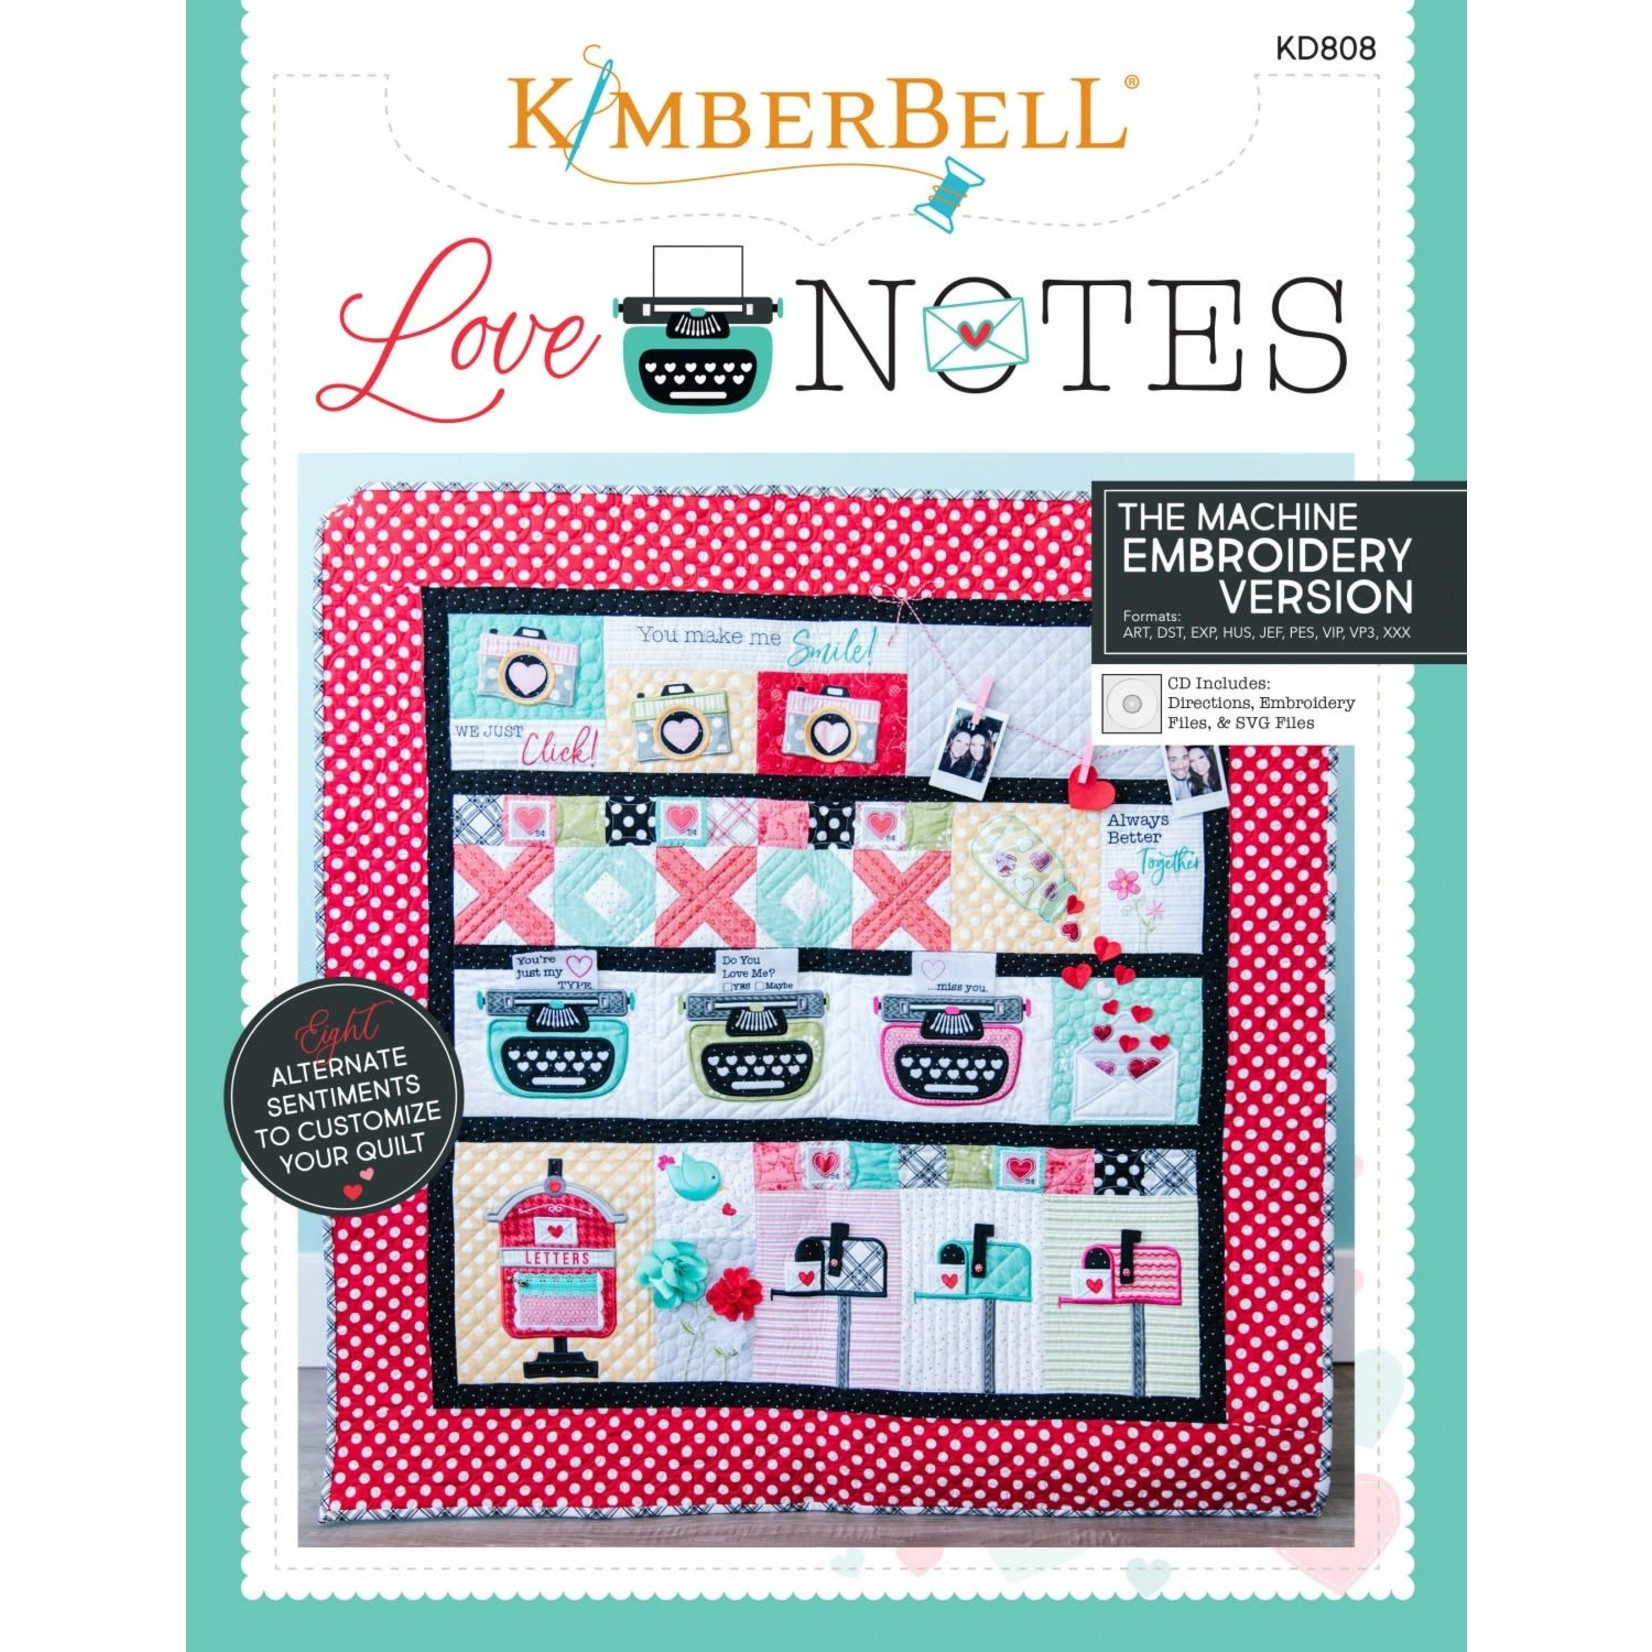 KIMBERBELL DESIGNS Love Notes Sewing Pattern Book and Machine Embroidery CD